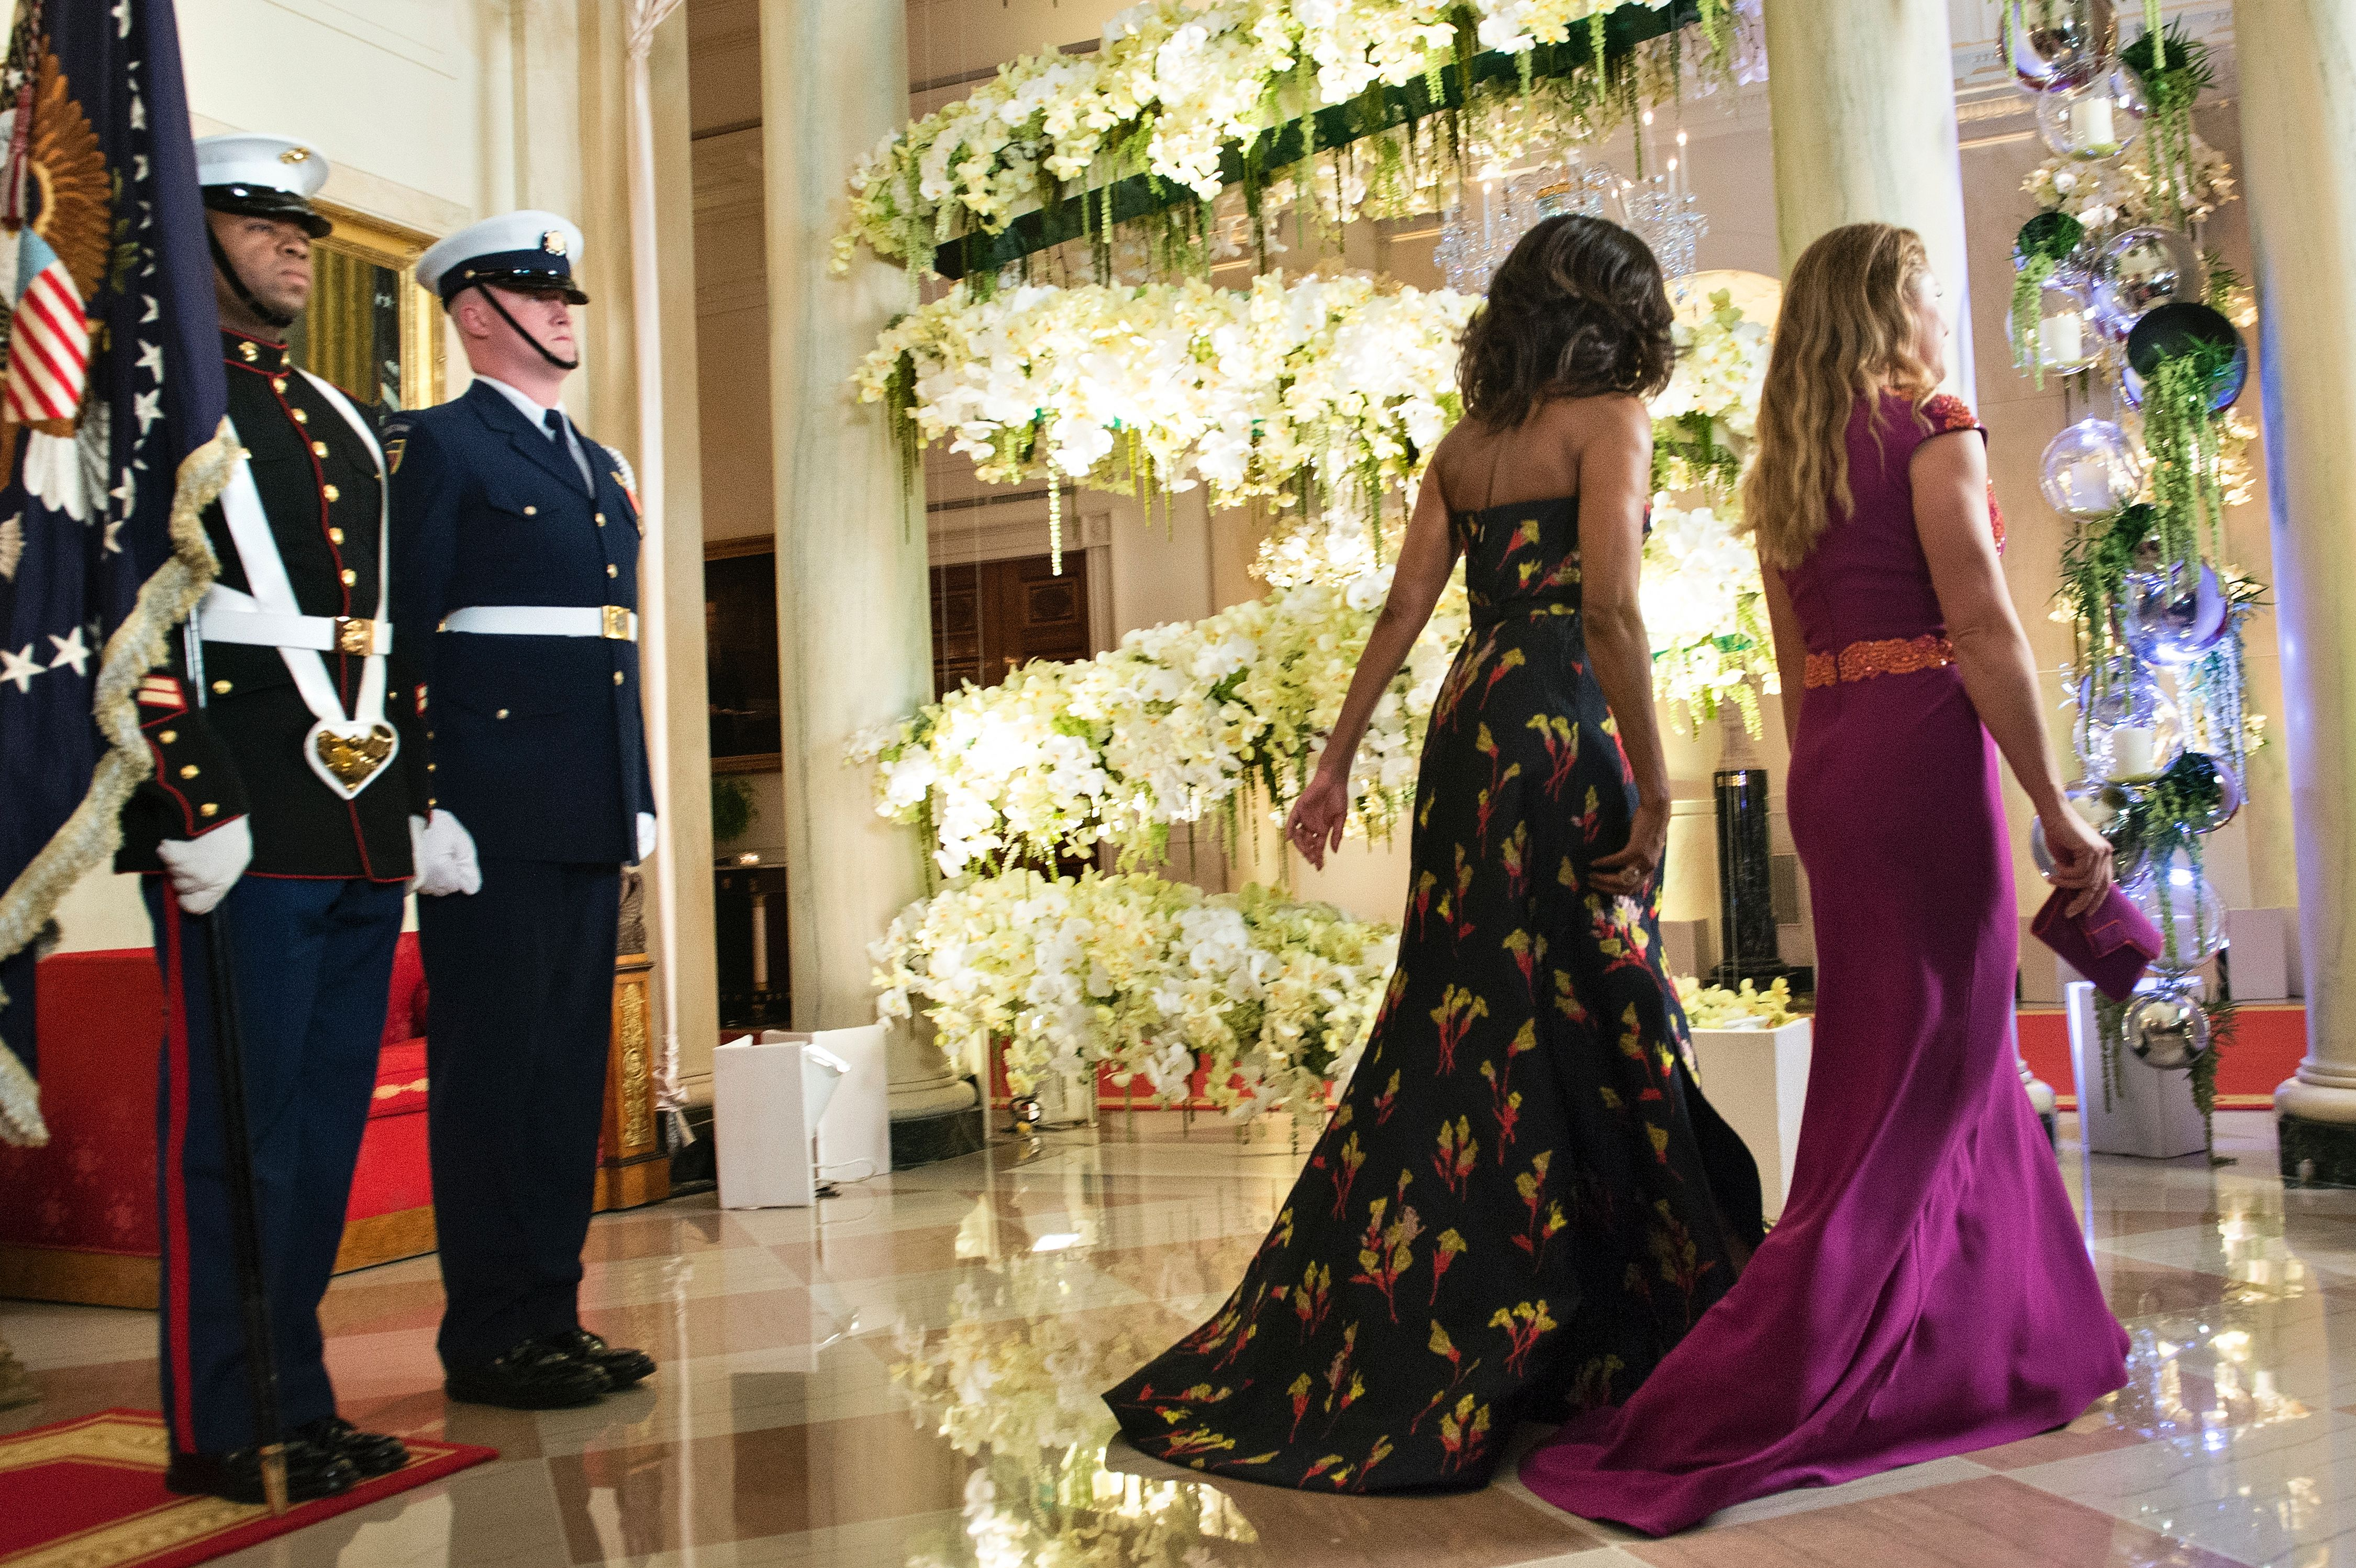 Michelle Obama (2nd R) and Sophie Gregoire-Trudeau walk to a state dinner at the White House in Washington, D.C., on March 10, 2016.